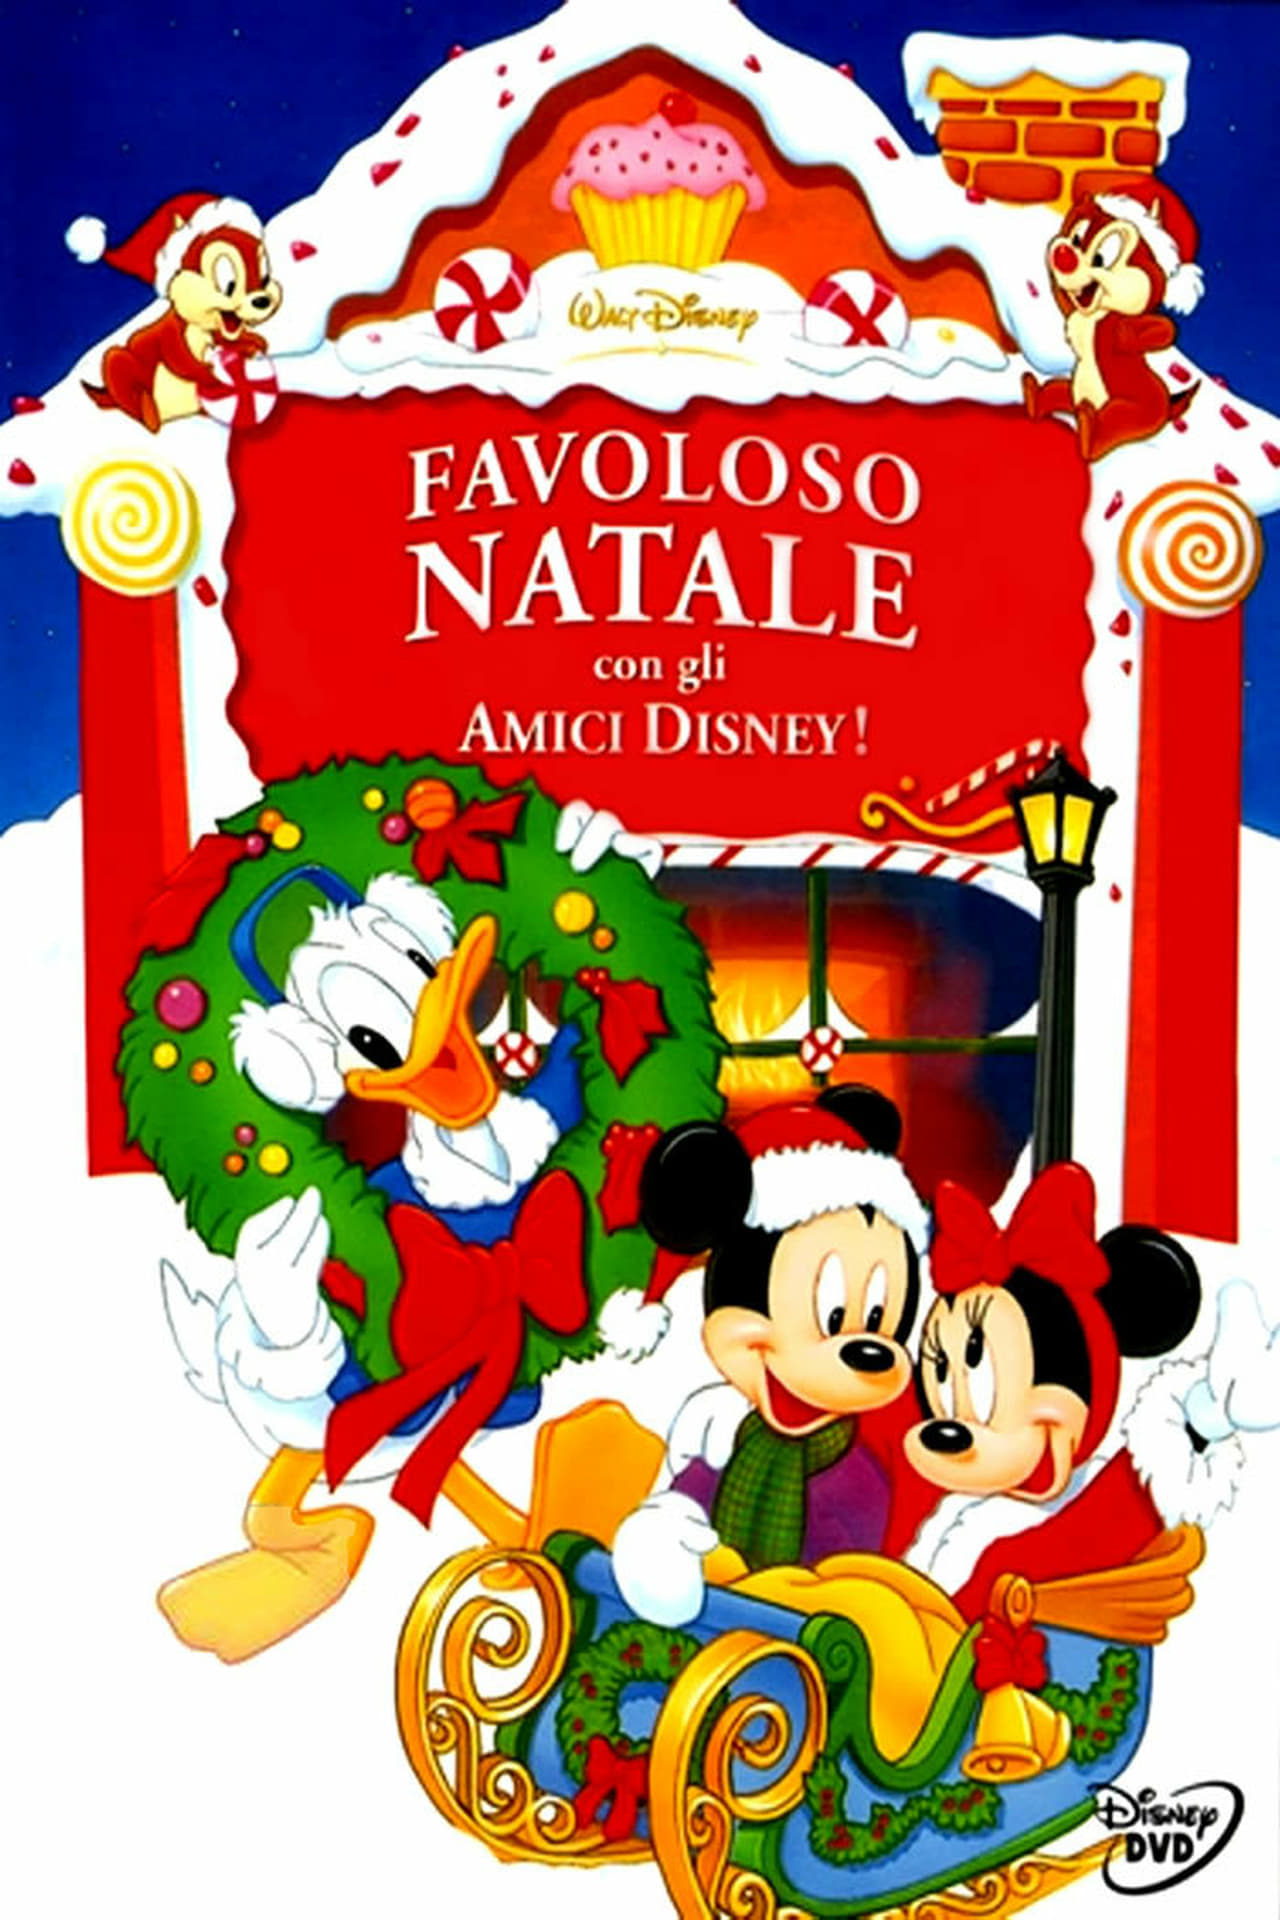 Celebrate Christmas With Mickey, Donald & Friends (2000)